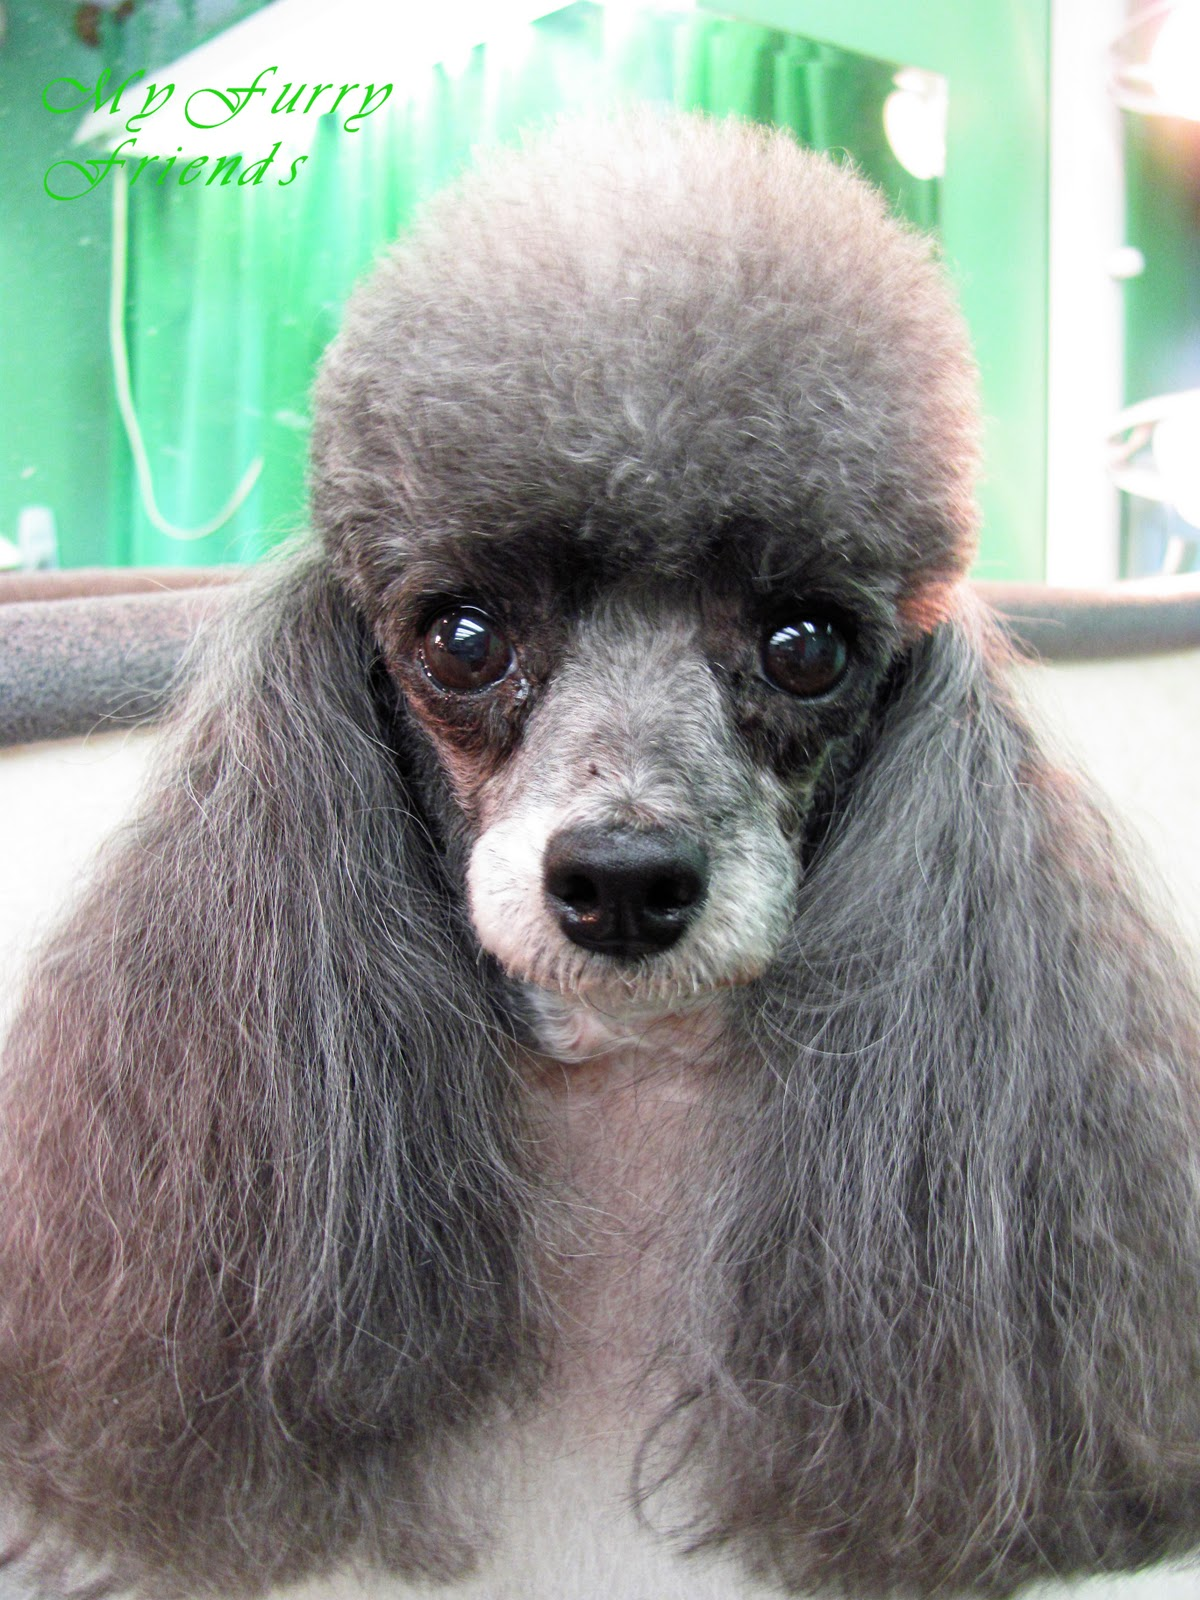 Grooming a poodle head